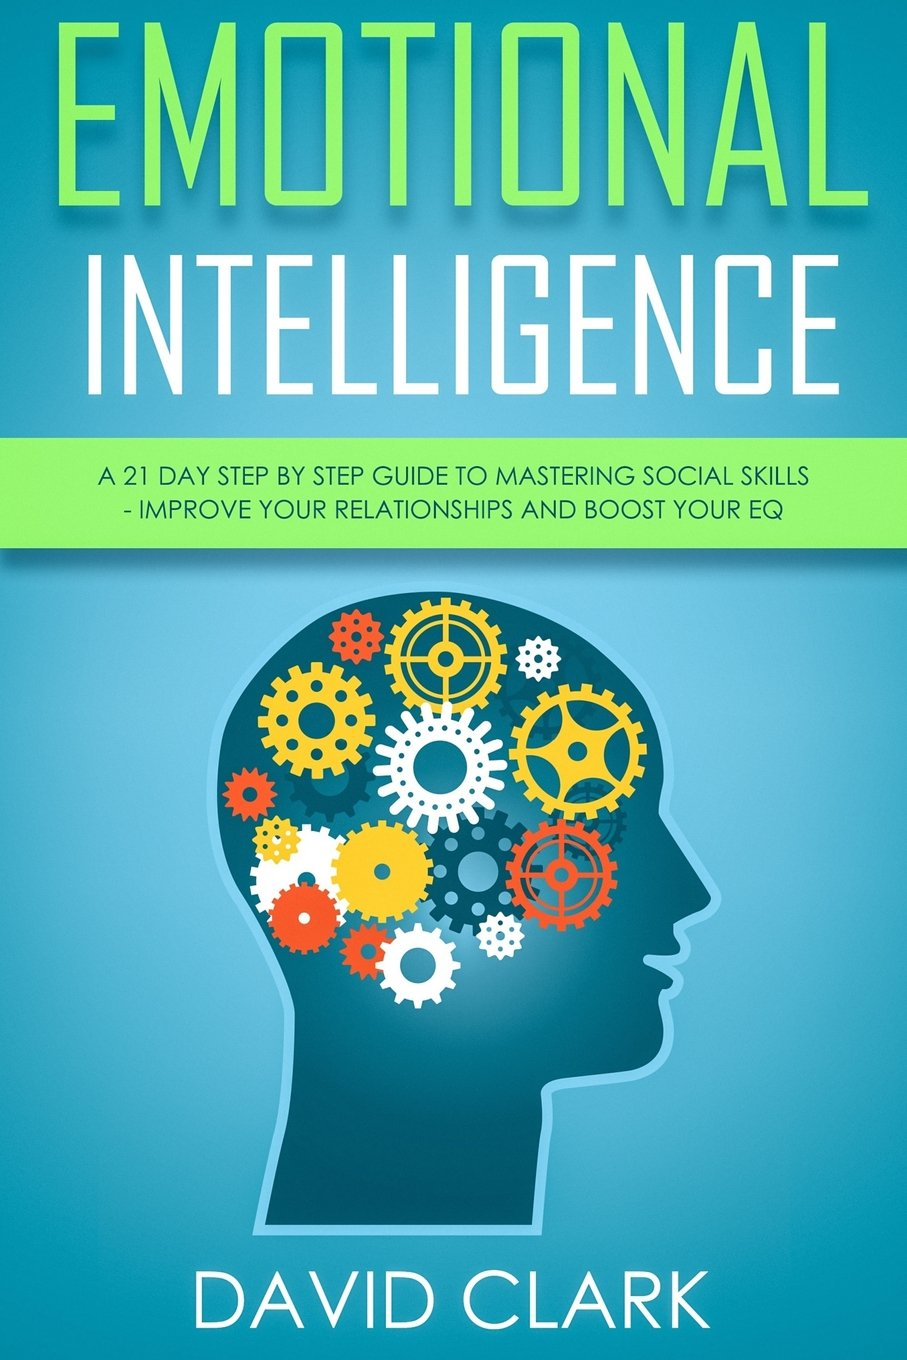 Emotional Intelligence: A 21- Day Step by Step Guide to Mastering Social Skills, Improve Your Relationships, and Boost Your EQ (Emotional Intelligence EQ) (Volume 2) Paperback – April 25, 2018 David Clark 1717140092